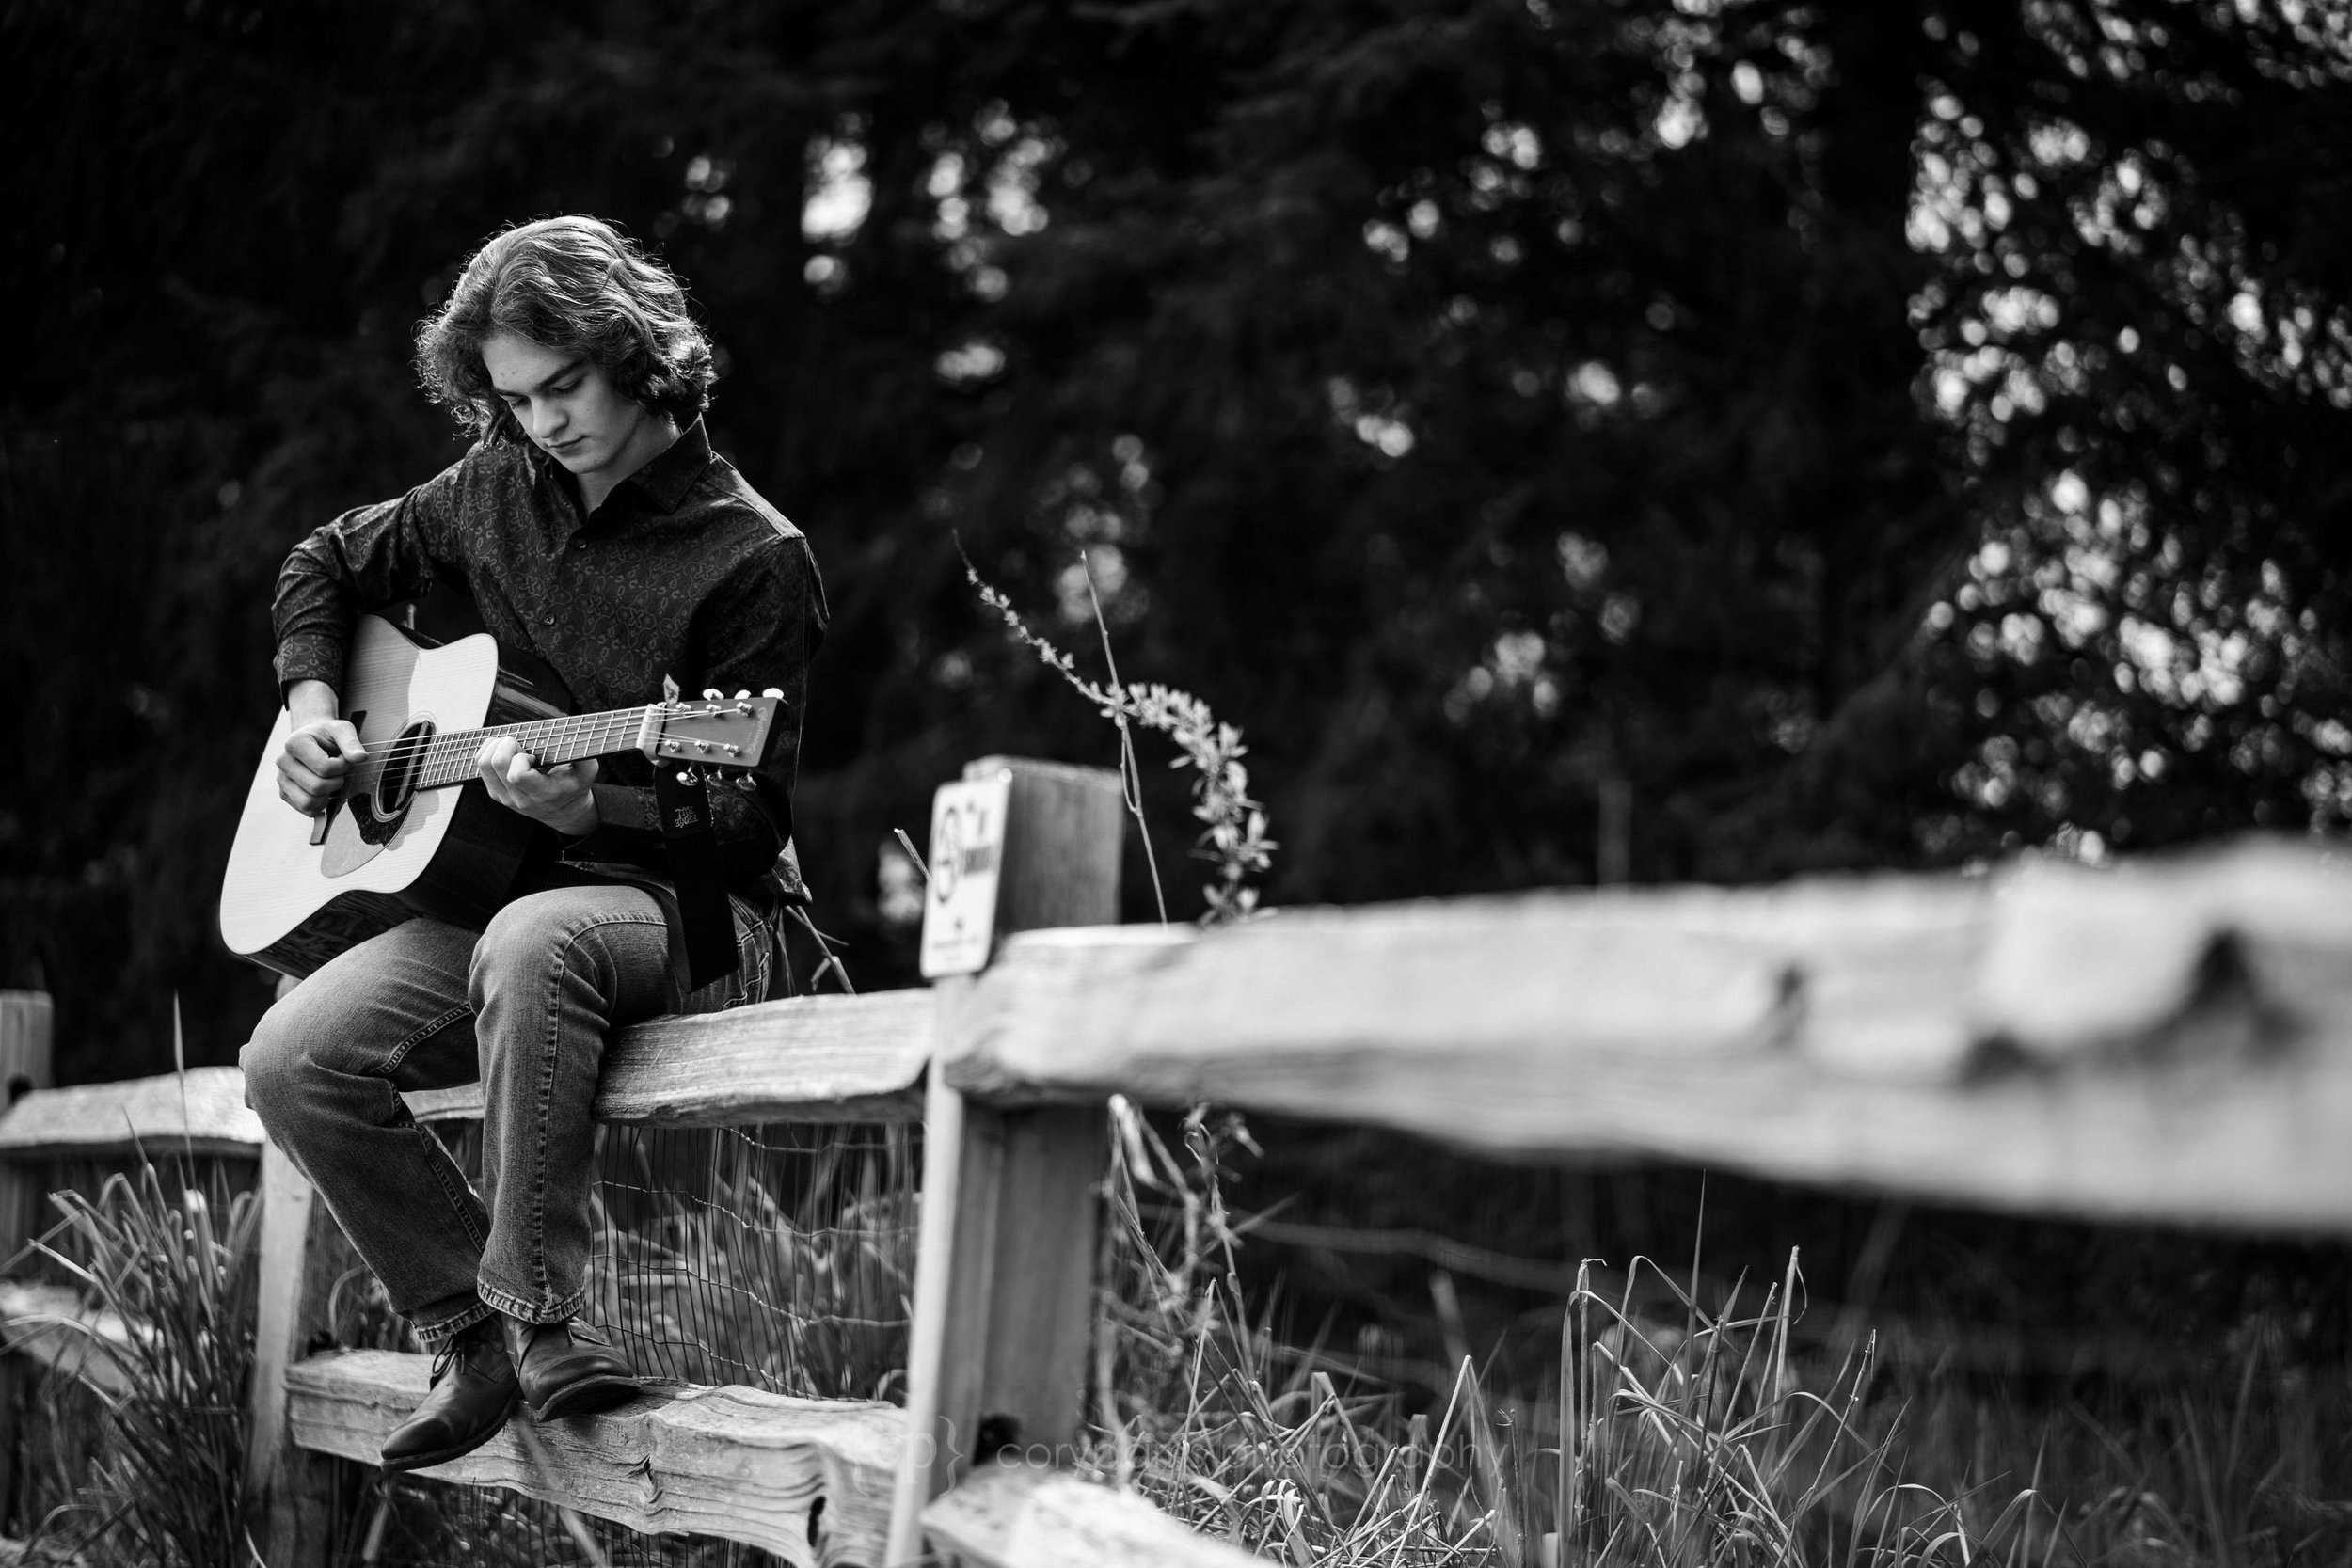 Joshua playing a guitar during his senior portrait session at Marymoor Park in Redmond